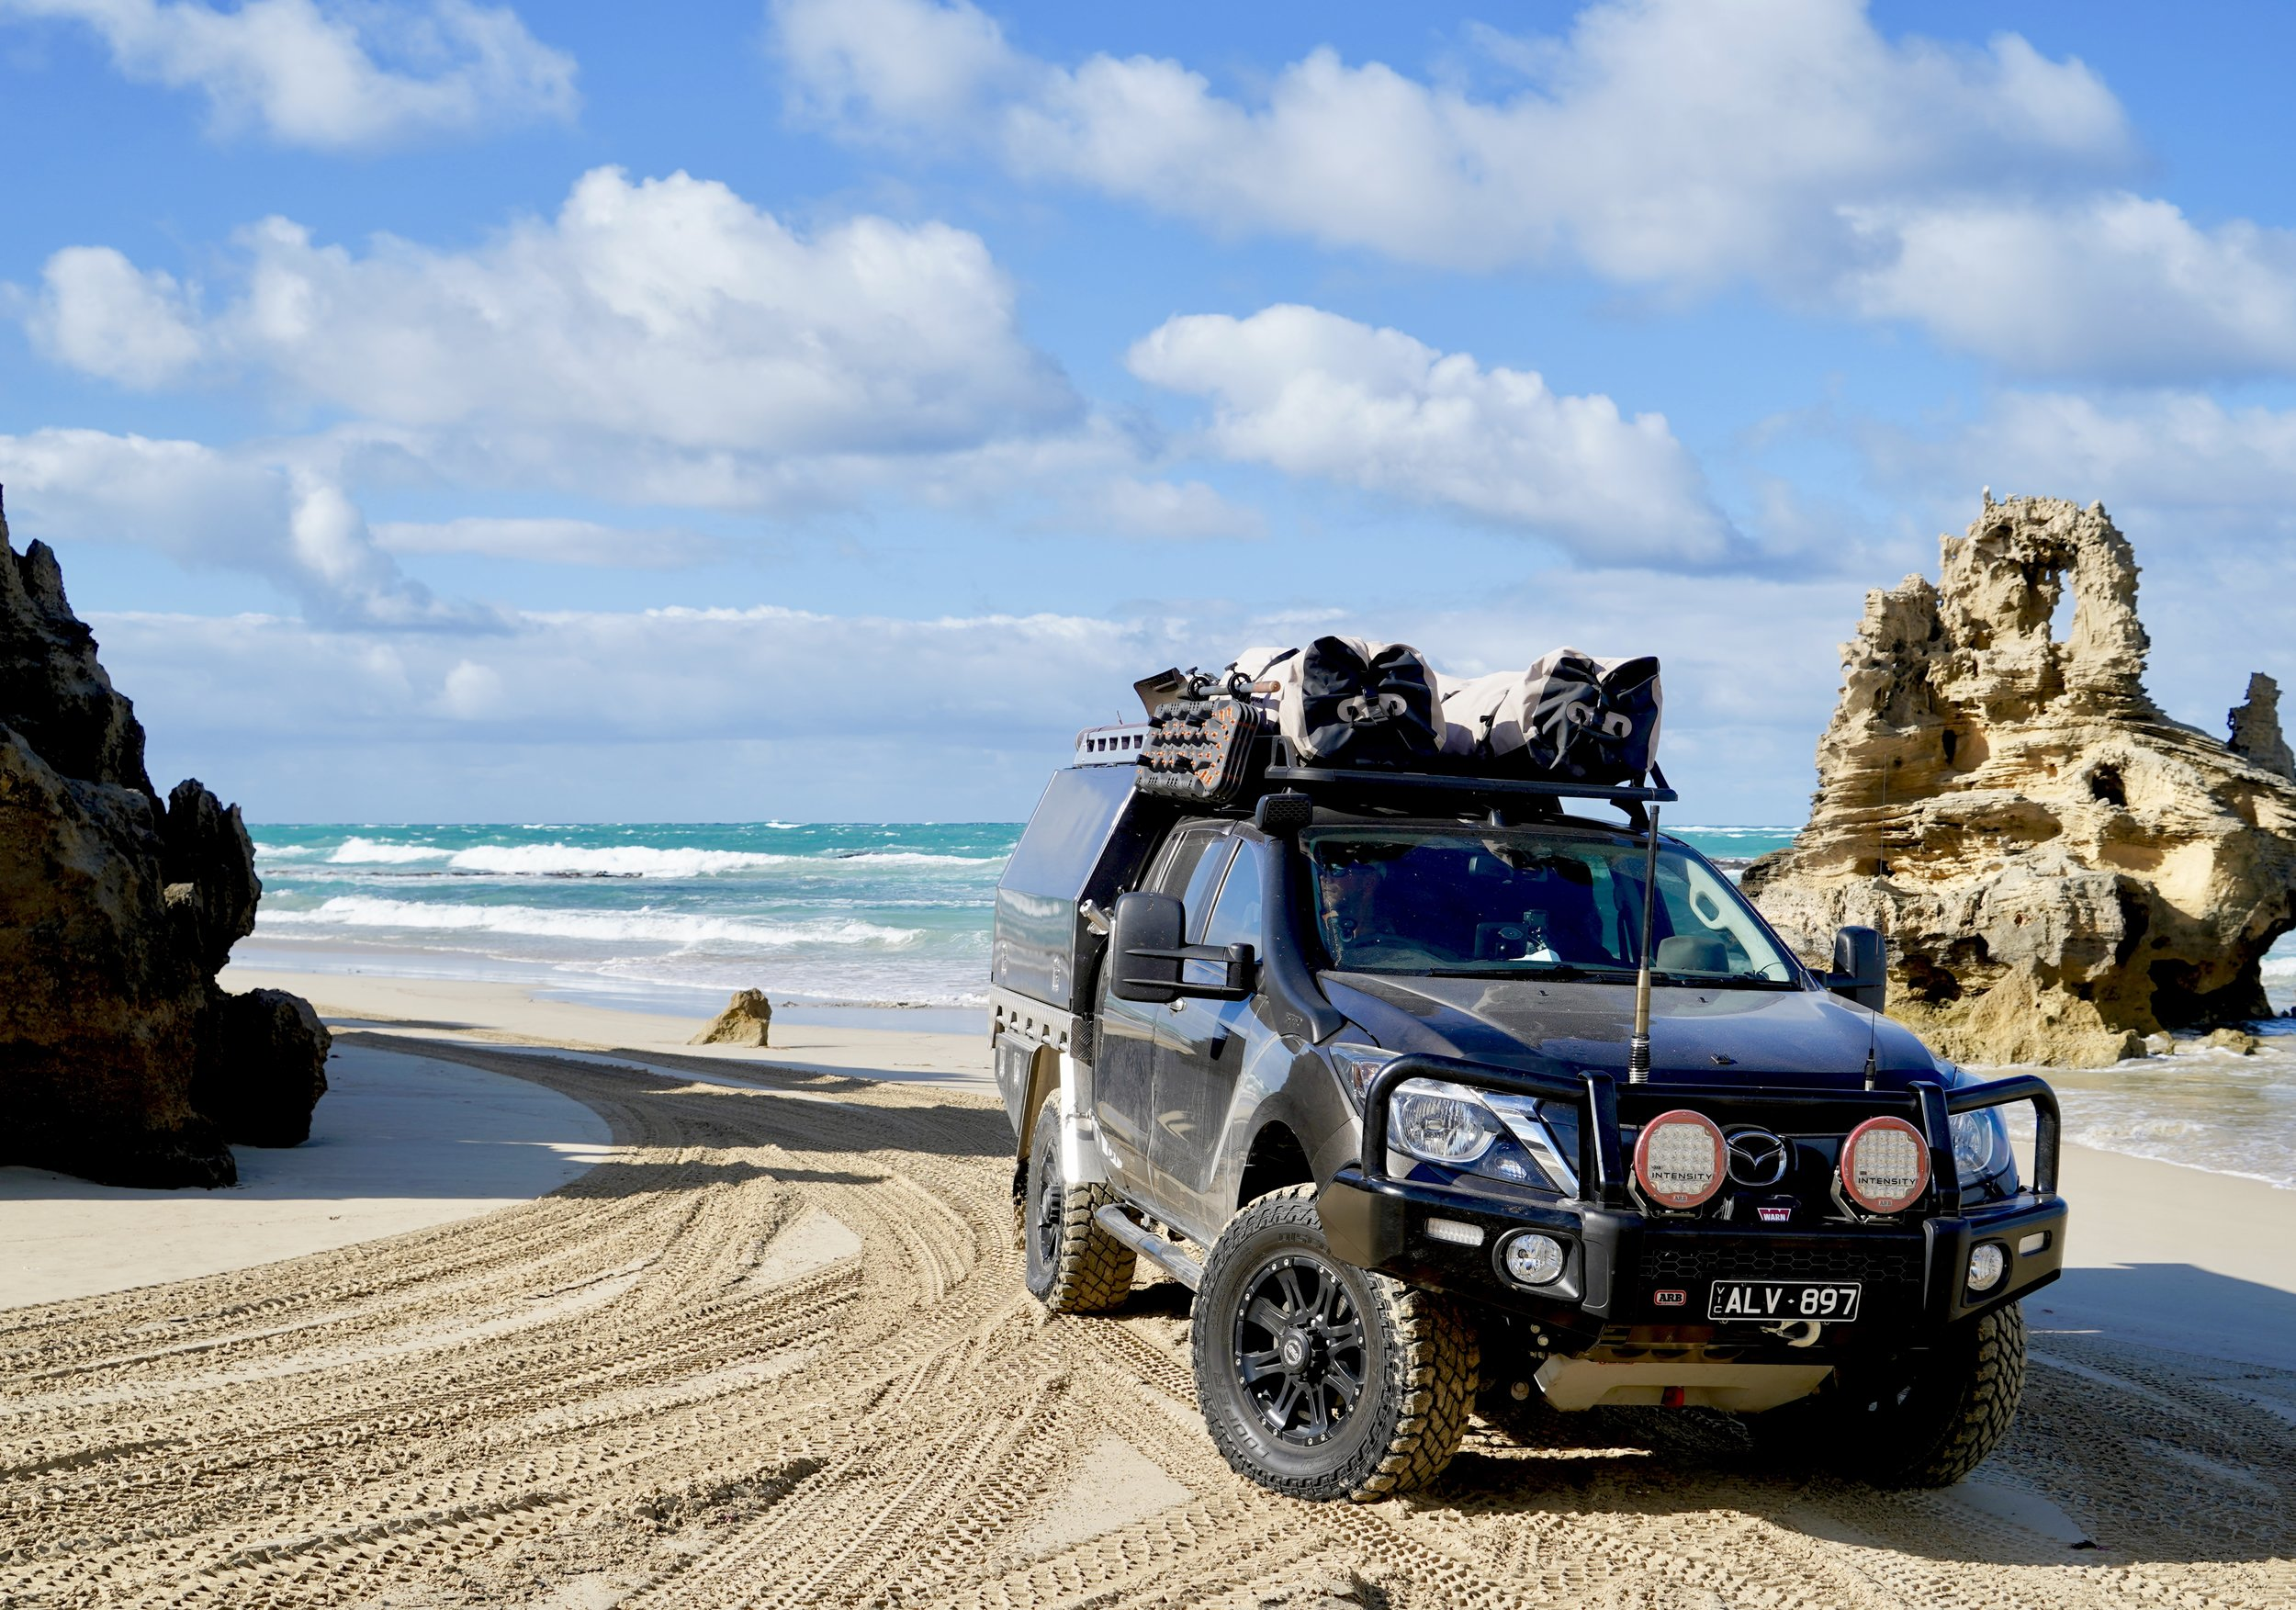 ONE OF THE BEST BEACH DRIVES WE HAVE DONE - LOVED IT!!